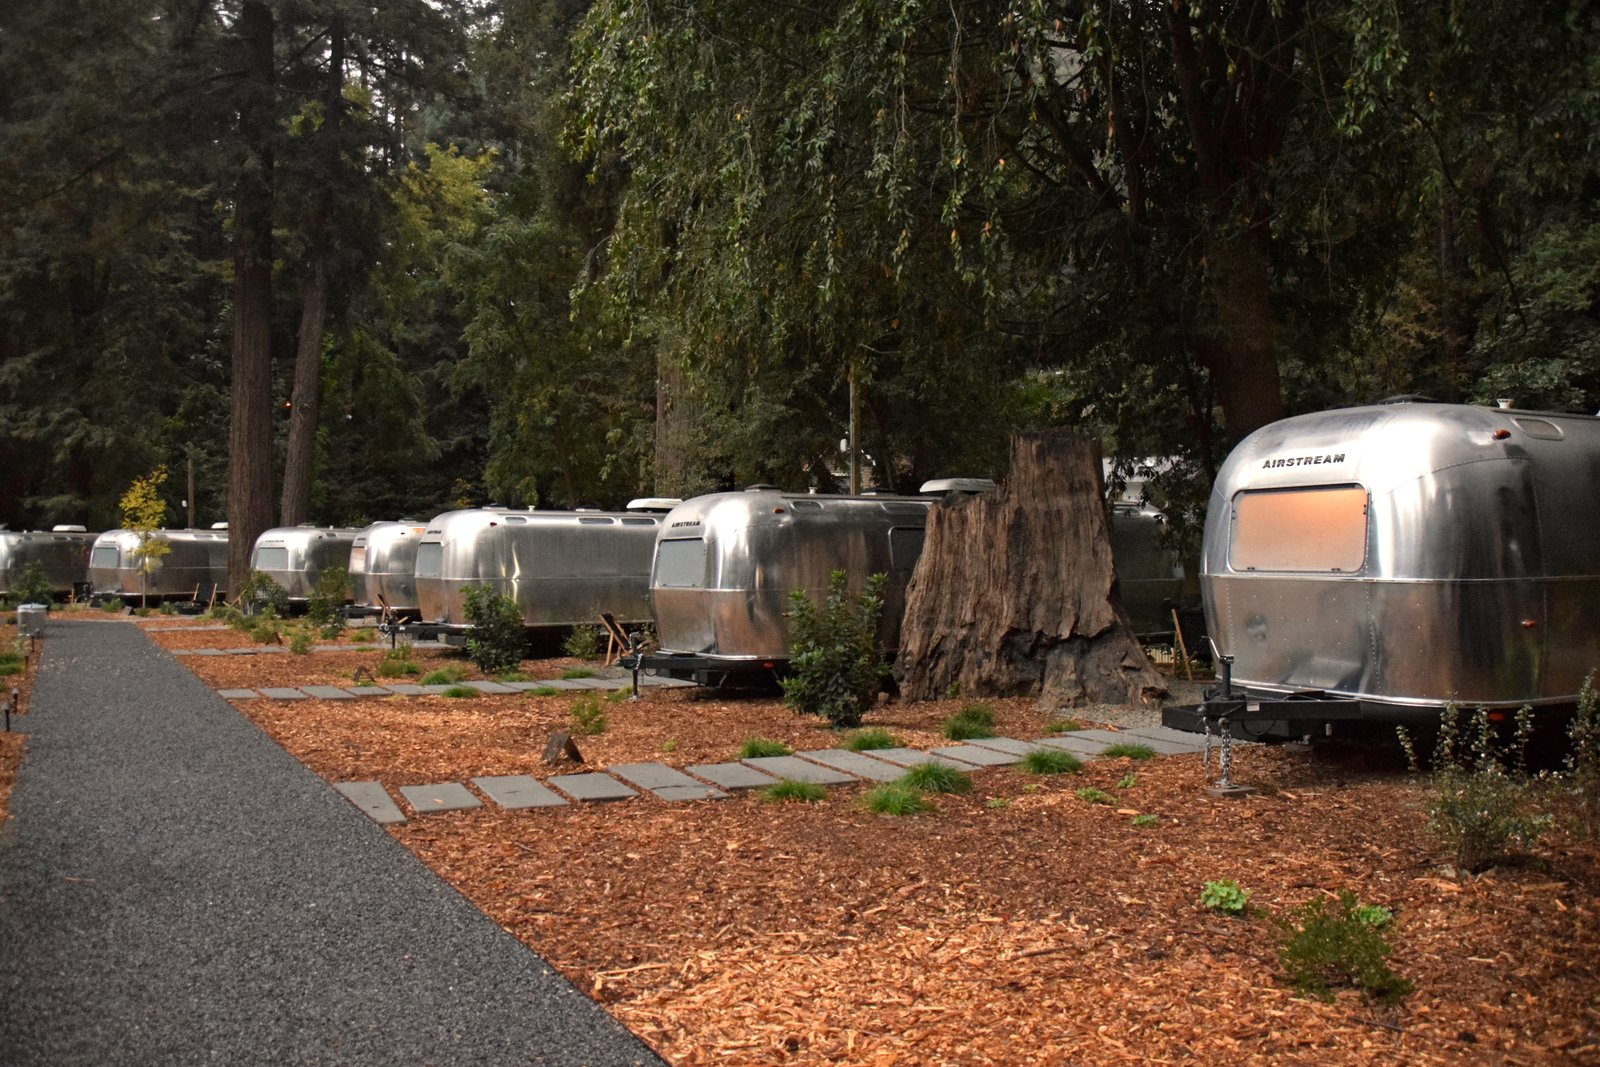 Airstream Caravan Vintage vintage inspired airstream trailer parks - modern small